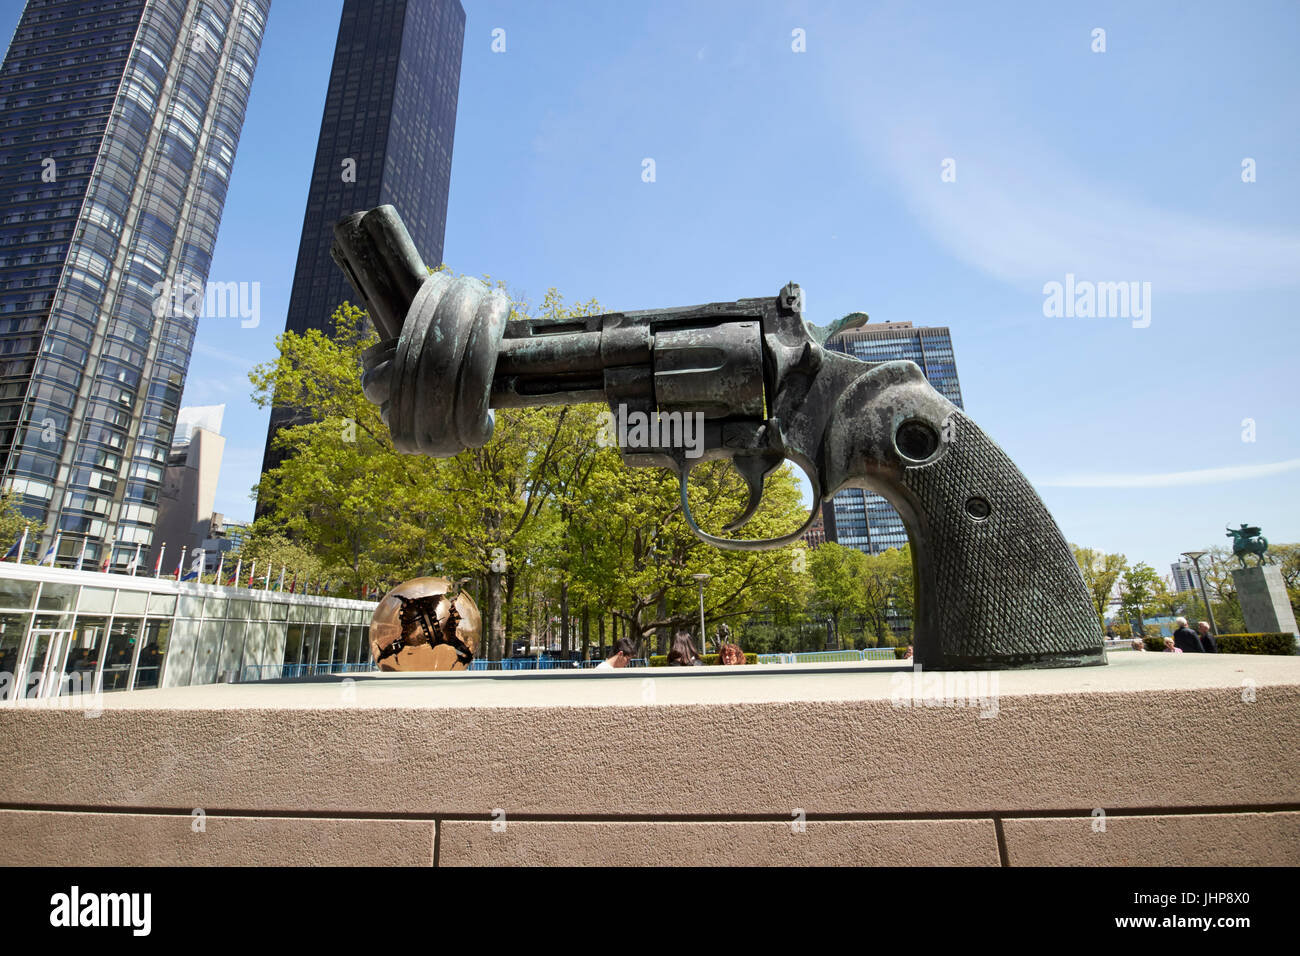 tied gun barrel non-violence sculpture in the grounds of the united nations New York City USA - Stock Image